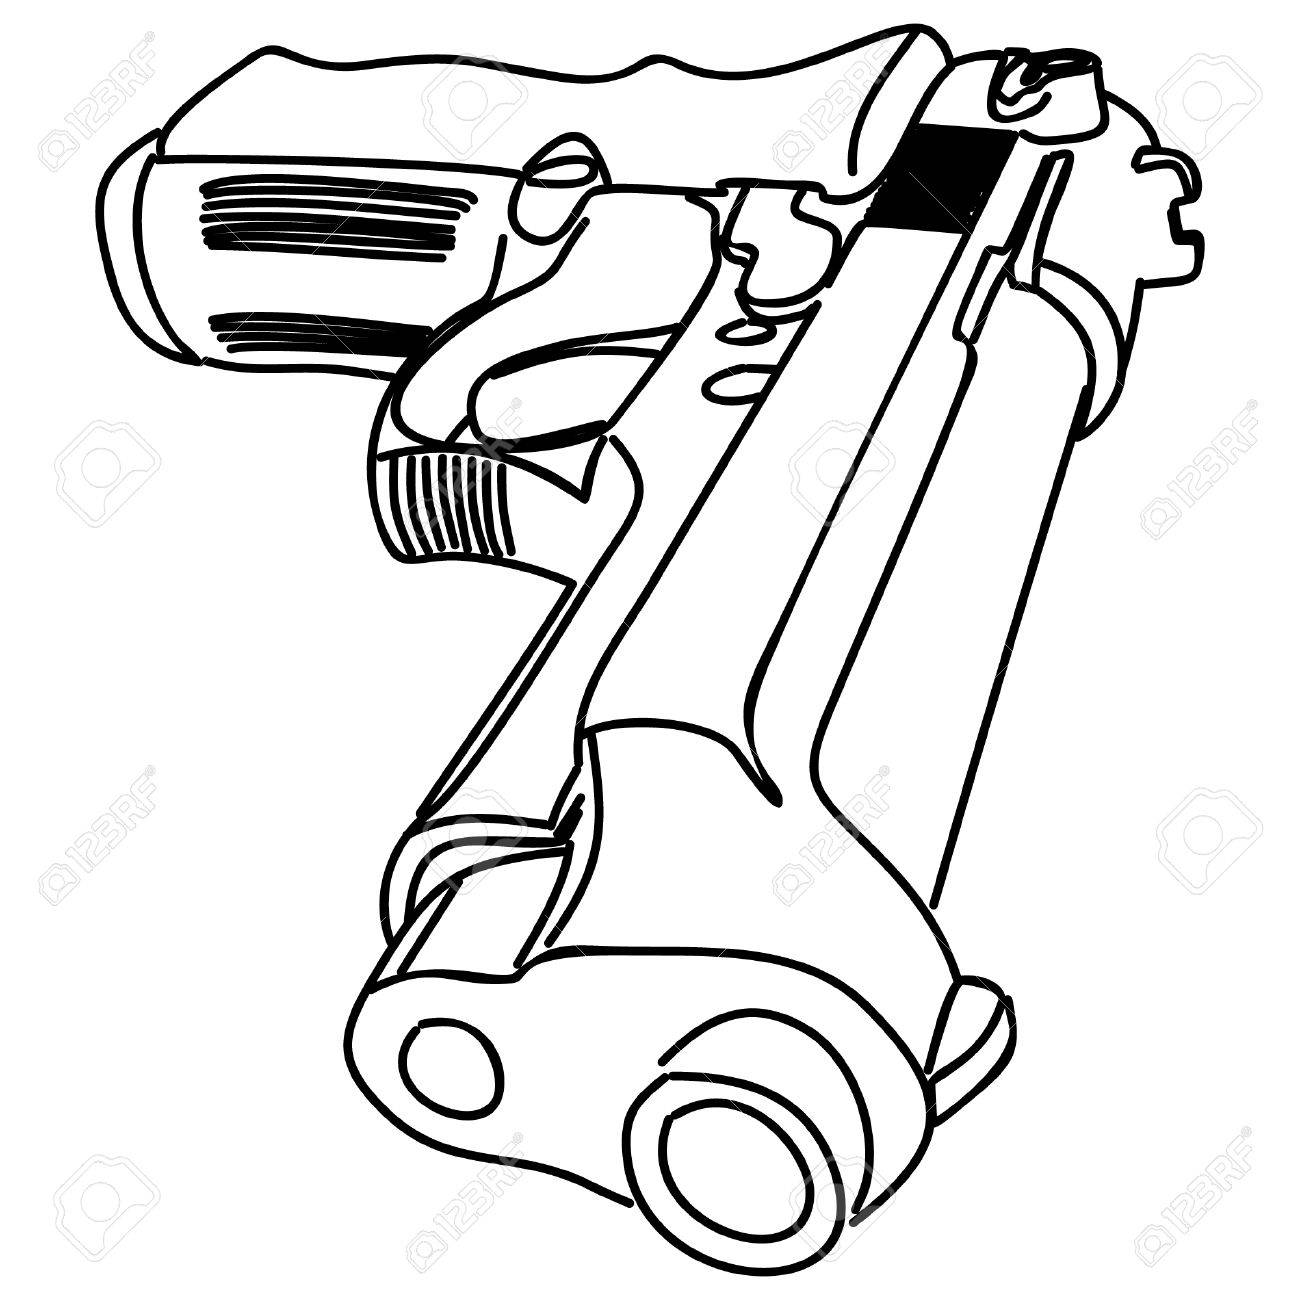 1300x1300 Pistol, Illustration Royalty Free Cliparts, Vectors, And Stock